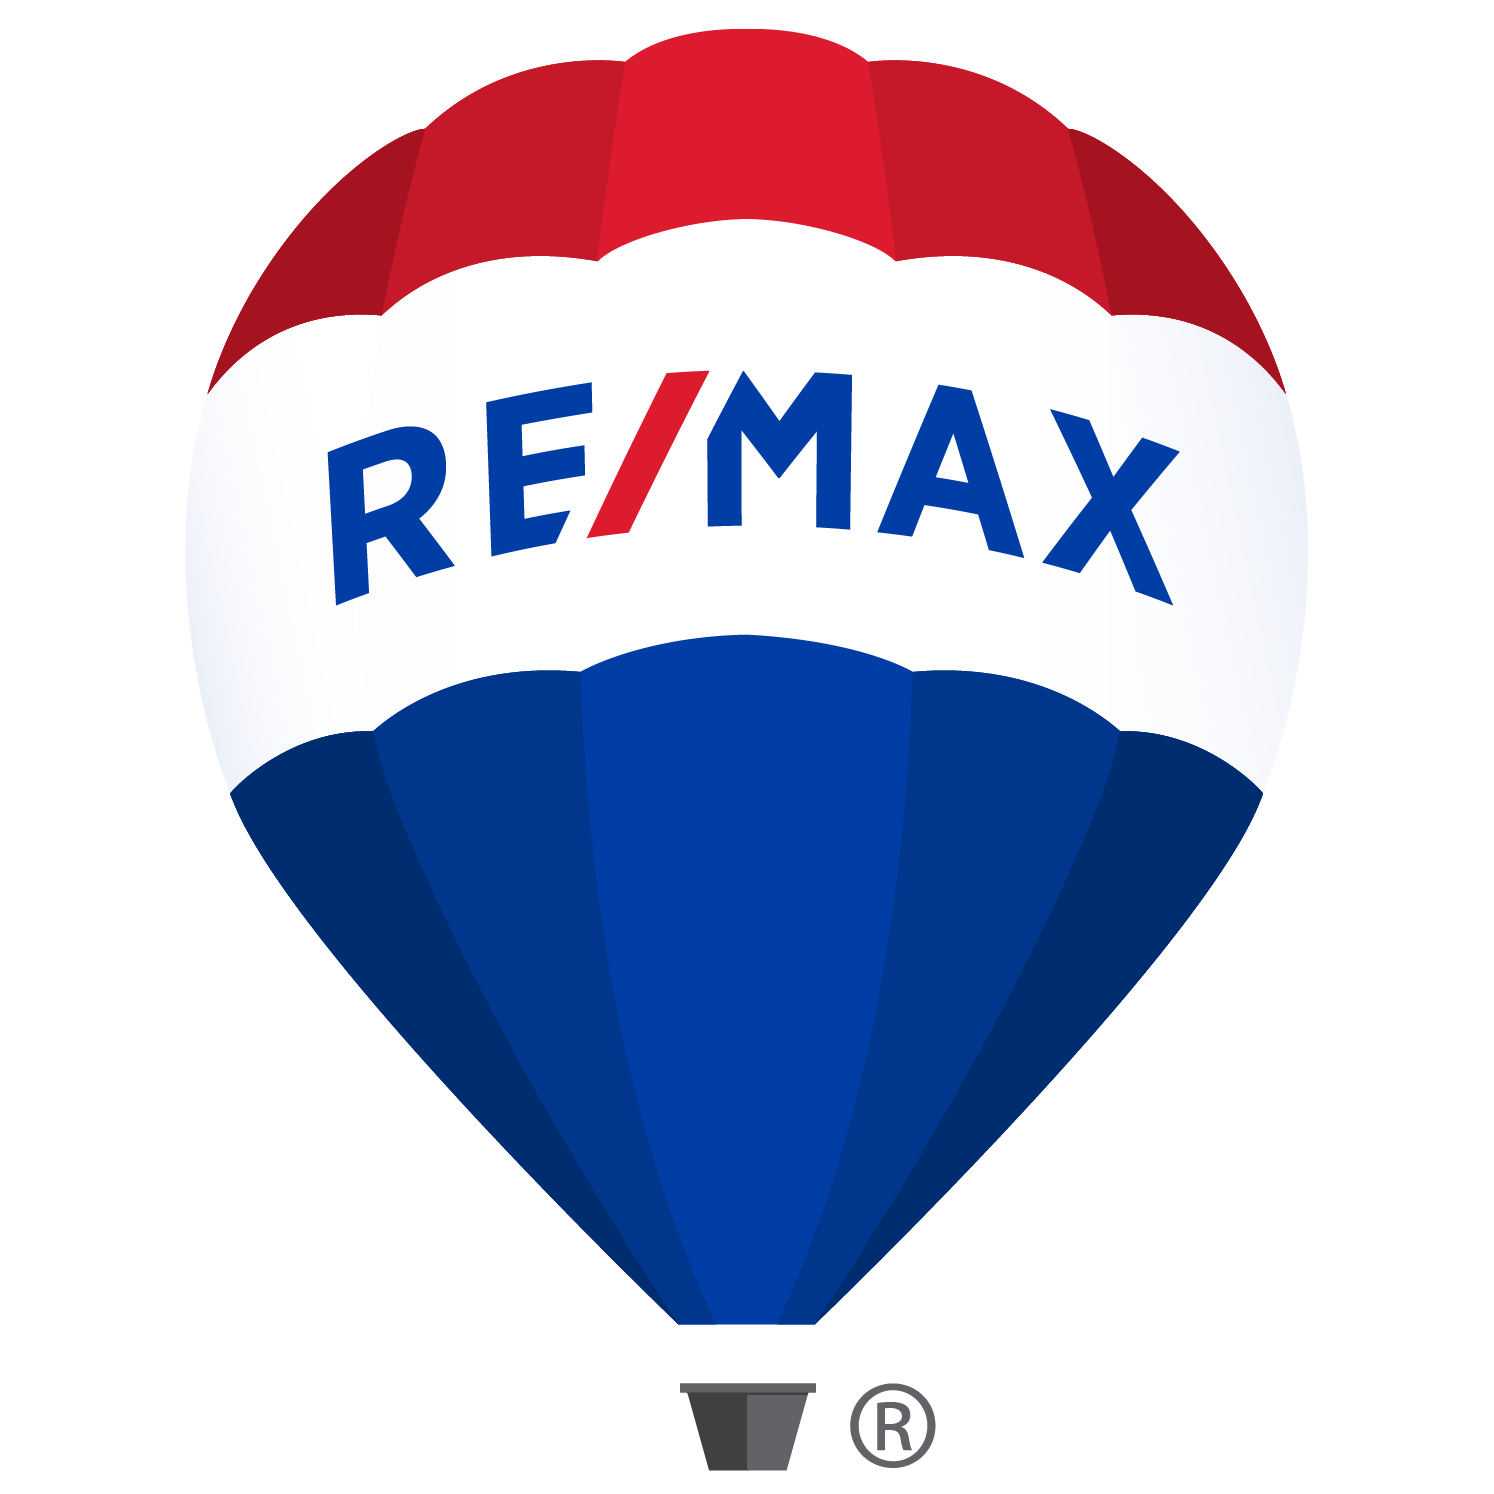 RE/MAX Top RealtyRE/MAX Top Realty